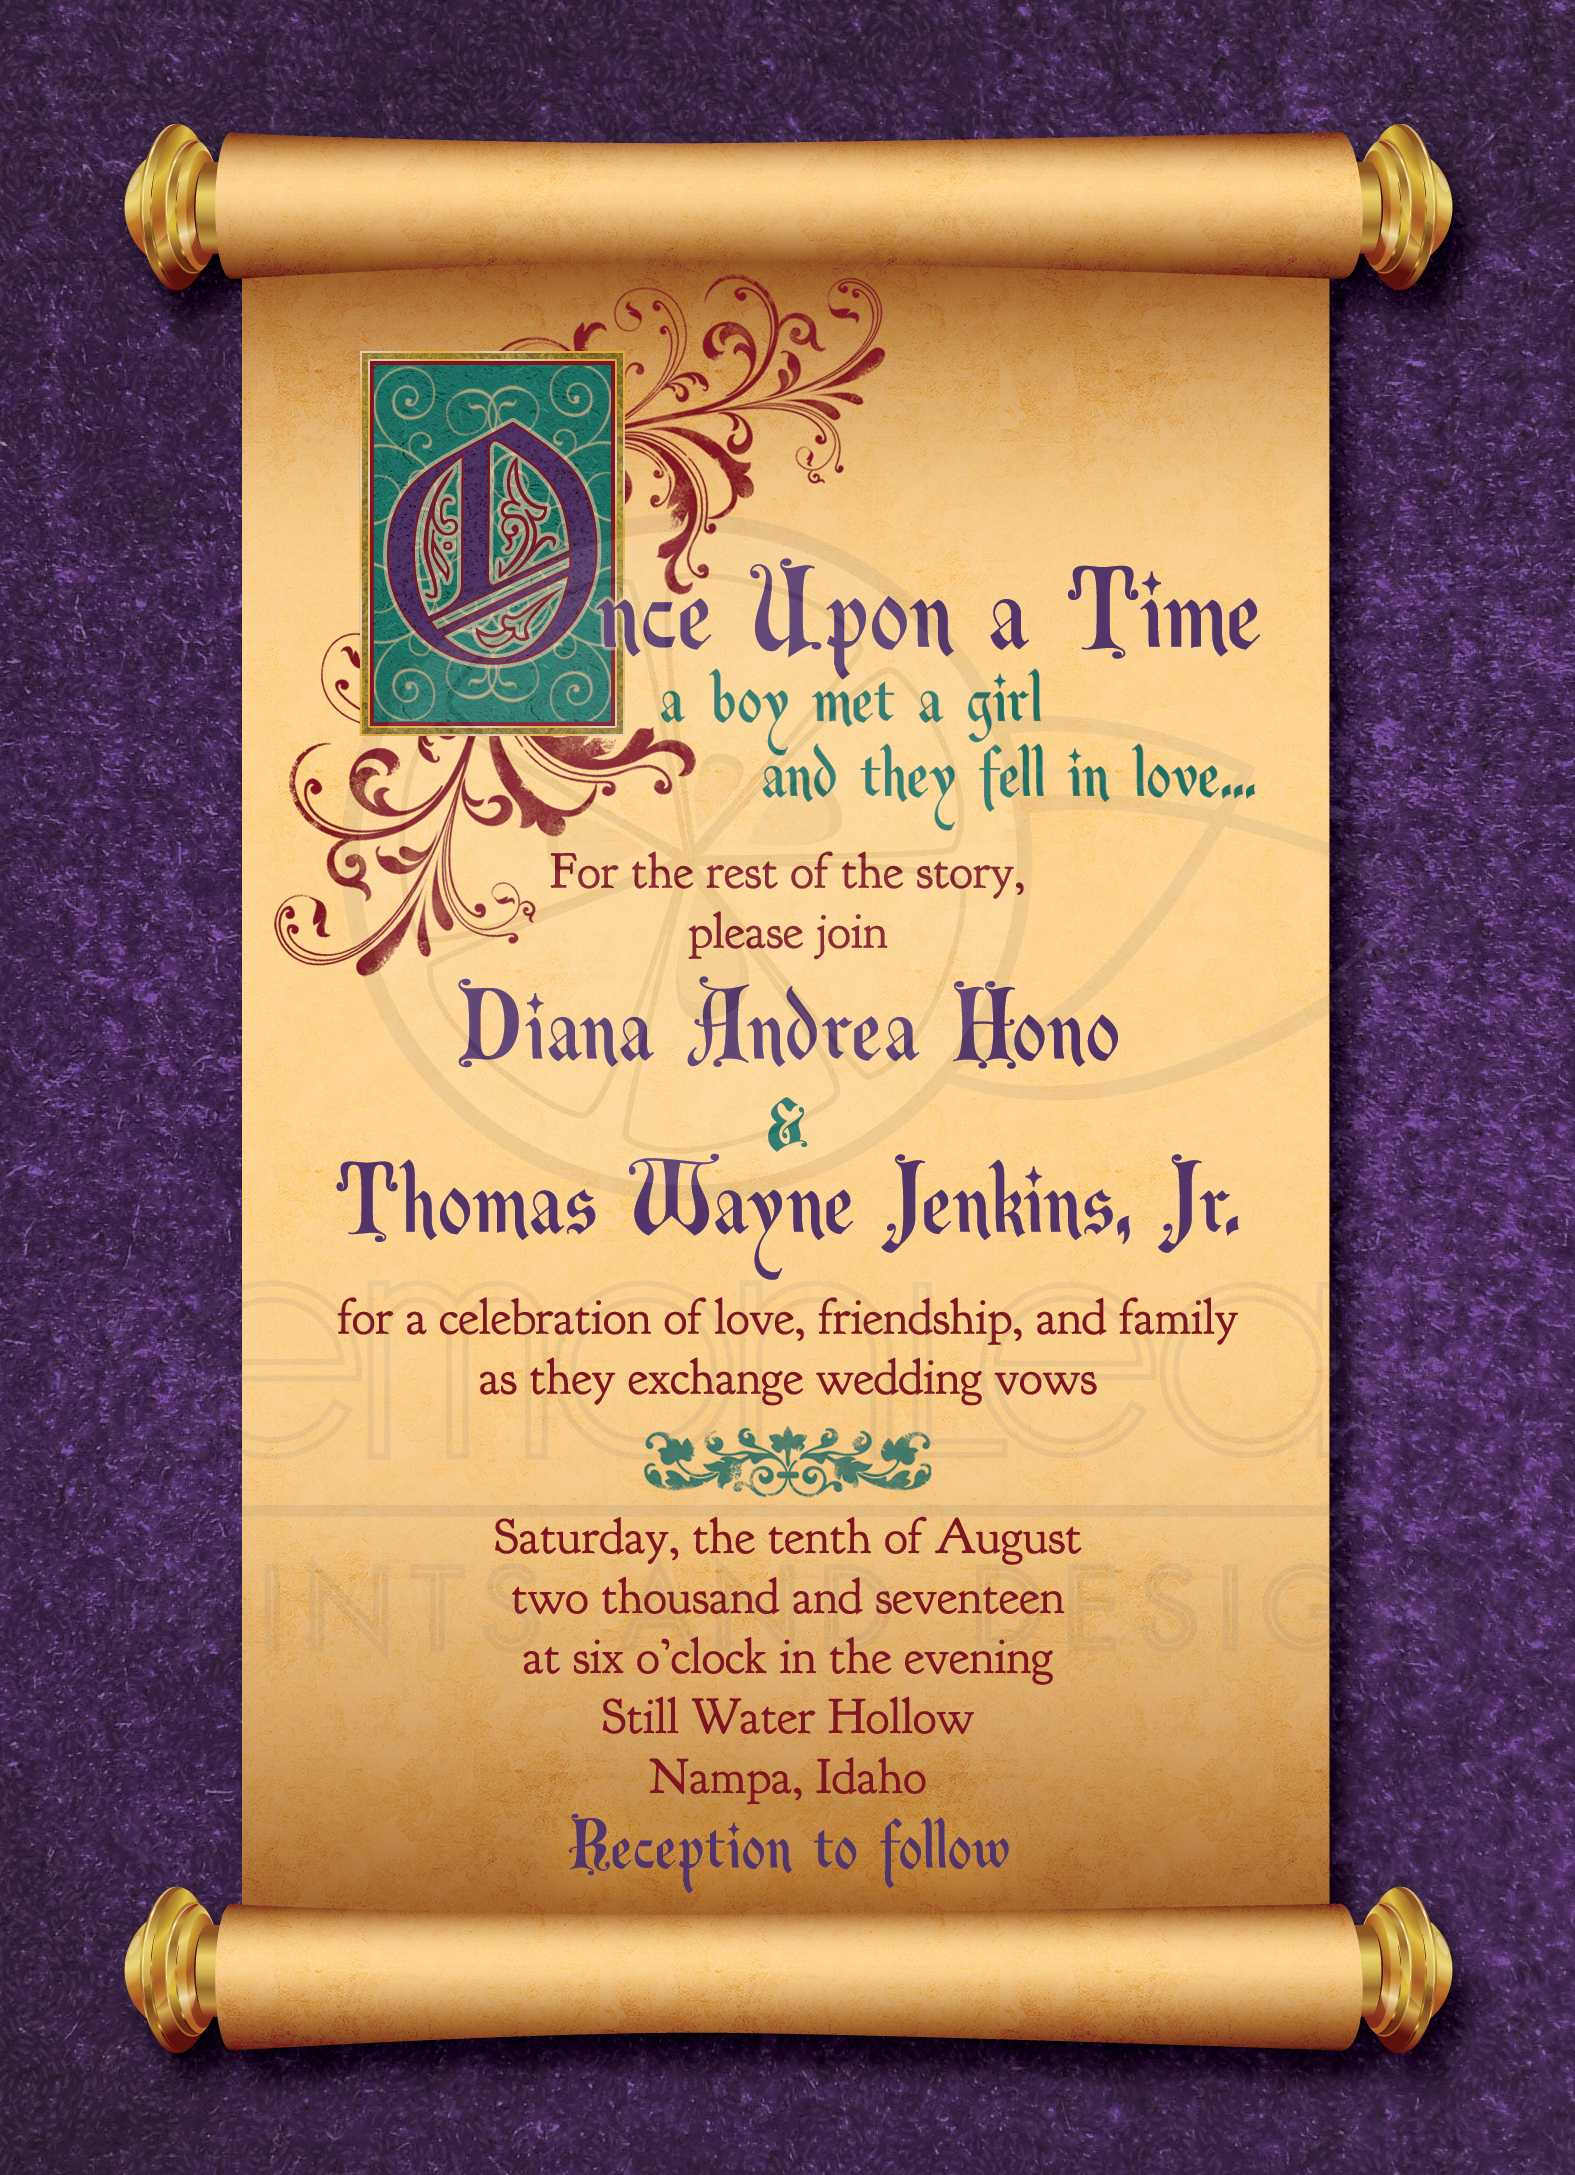 fairytale wedding invitation medieval scroll once upon a time - Medieval Wedding Invitations